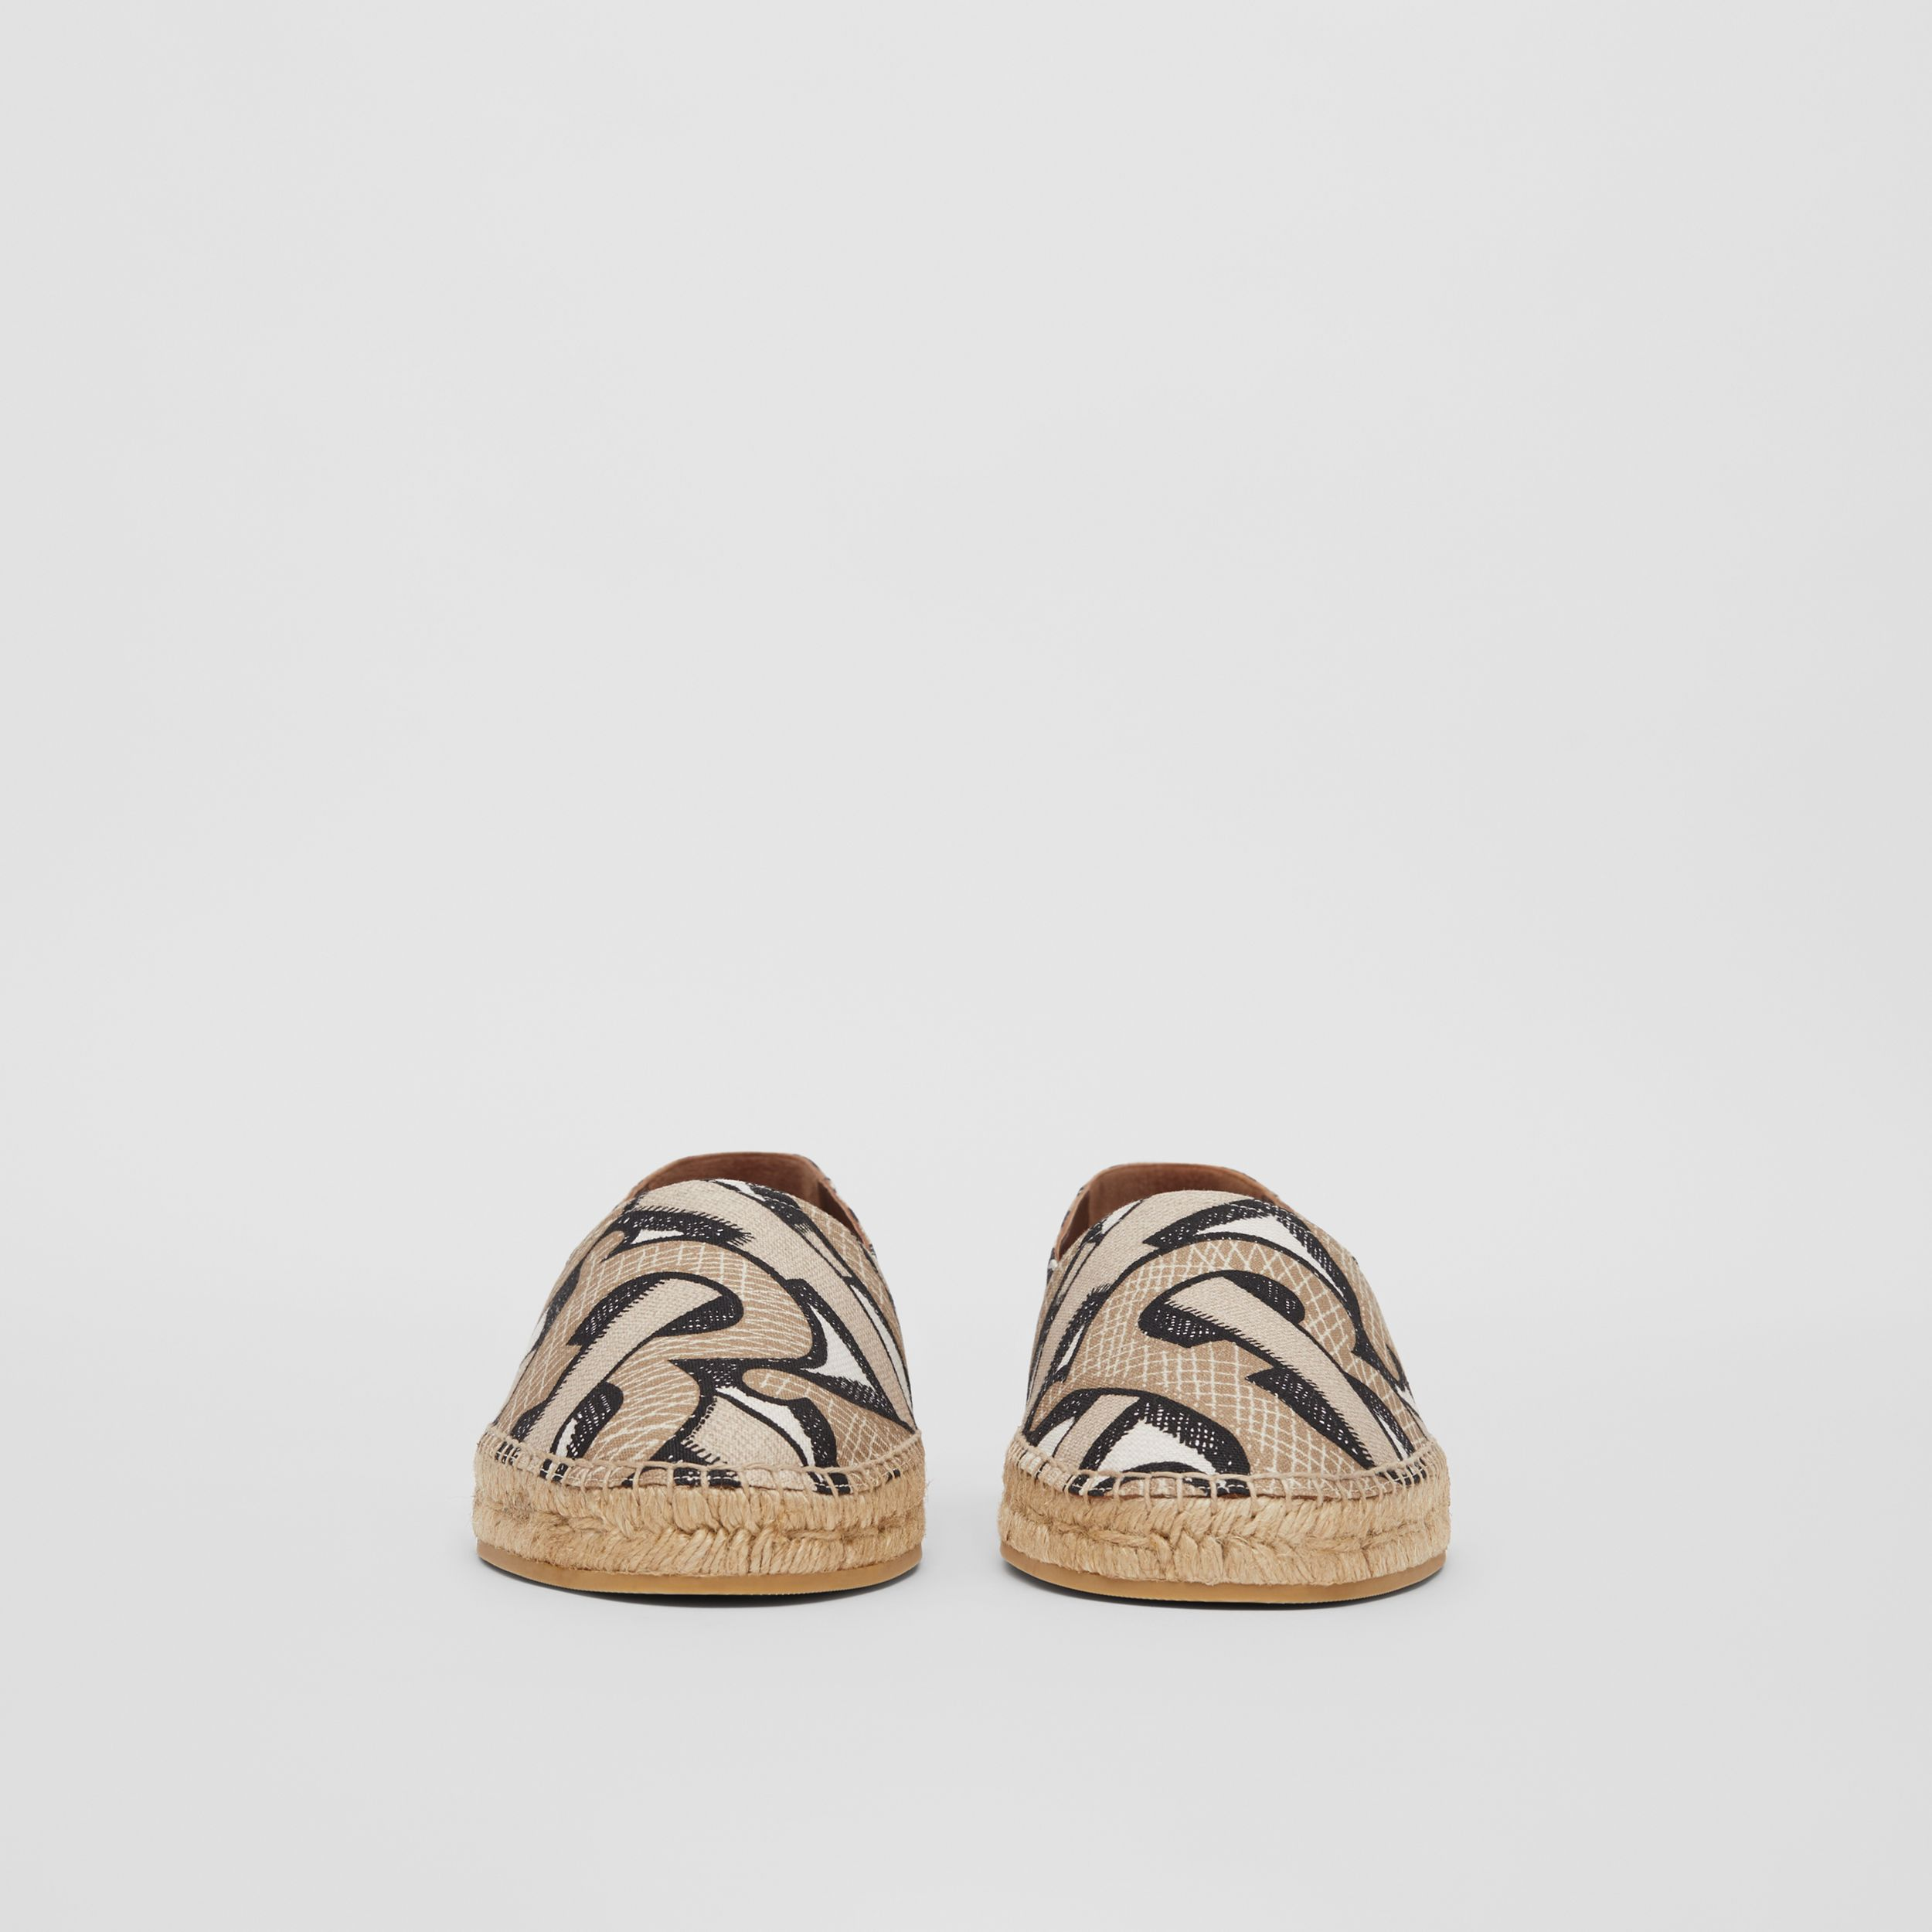 Monogram Print Cotton Canvas Espadrilles in Dark Beige | Burberry - 4